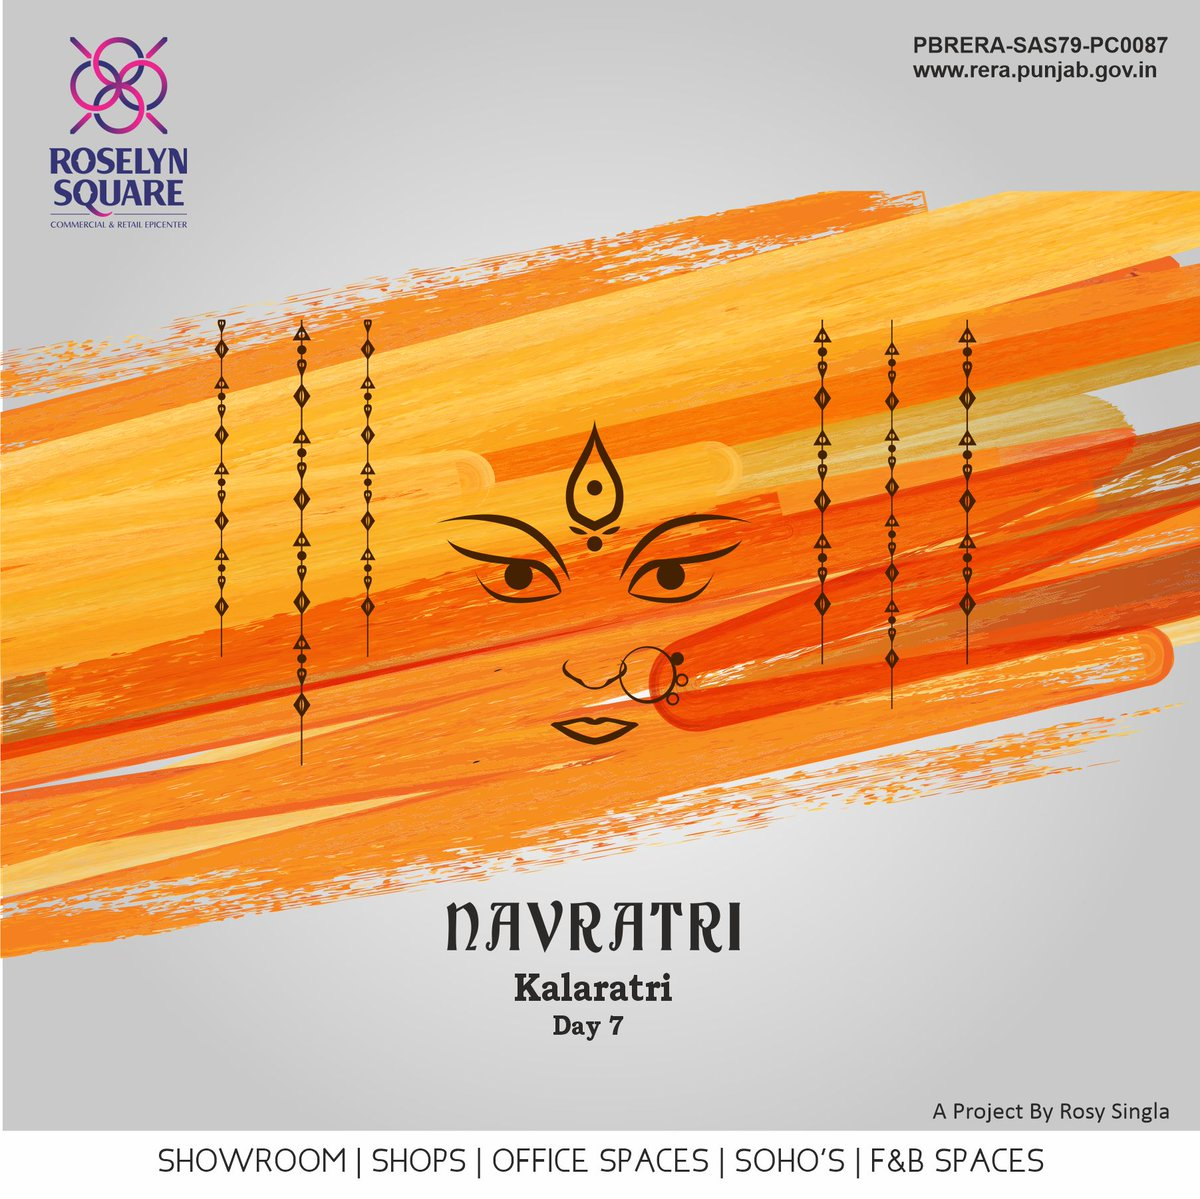 Roselyn Square wishes may Maa Kalaratri fill your life with success during Navratri and all through the year.  Happy 7th Day of the Navratri!  #Maakalaratri #Roselynsquare #Success #CommercialPlaza #Zirakpur #HappyNavratri